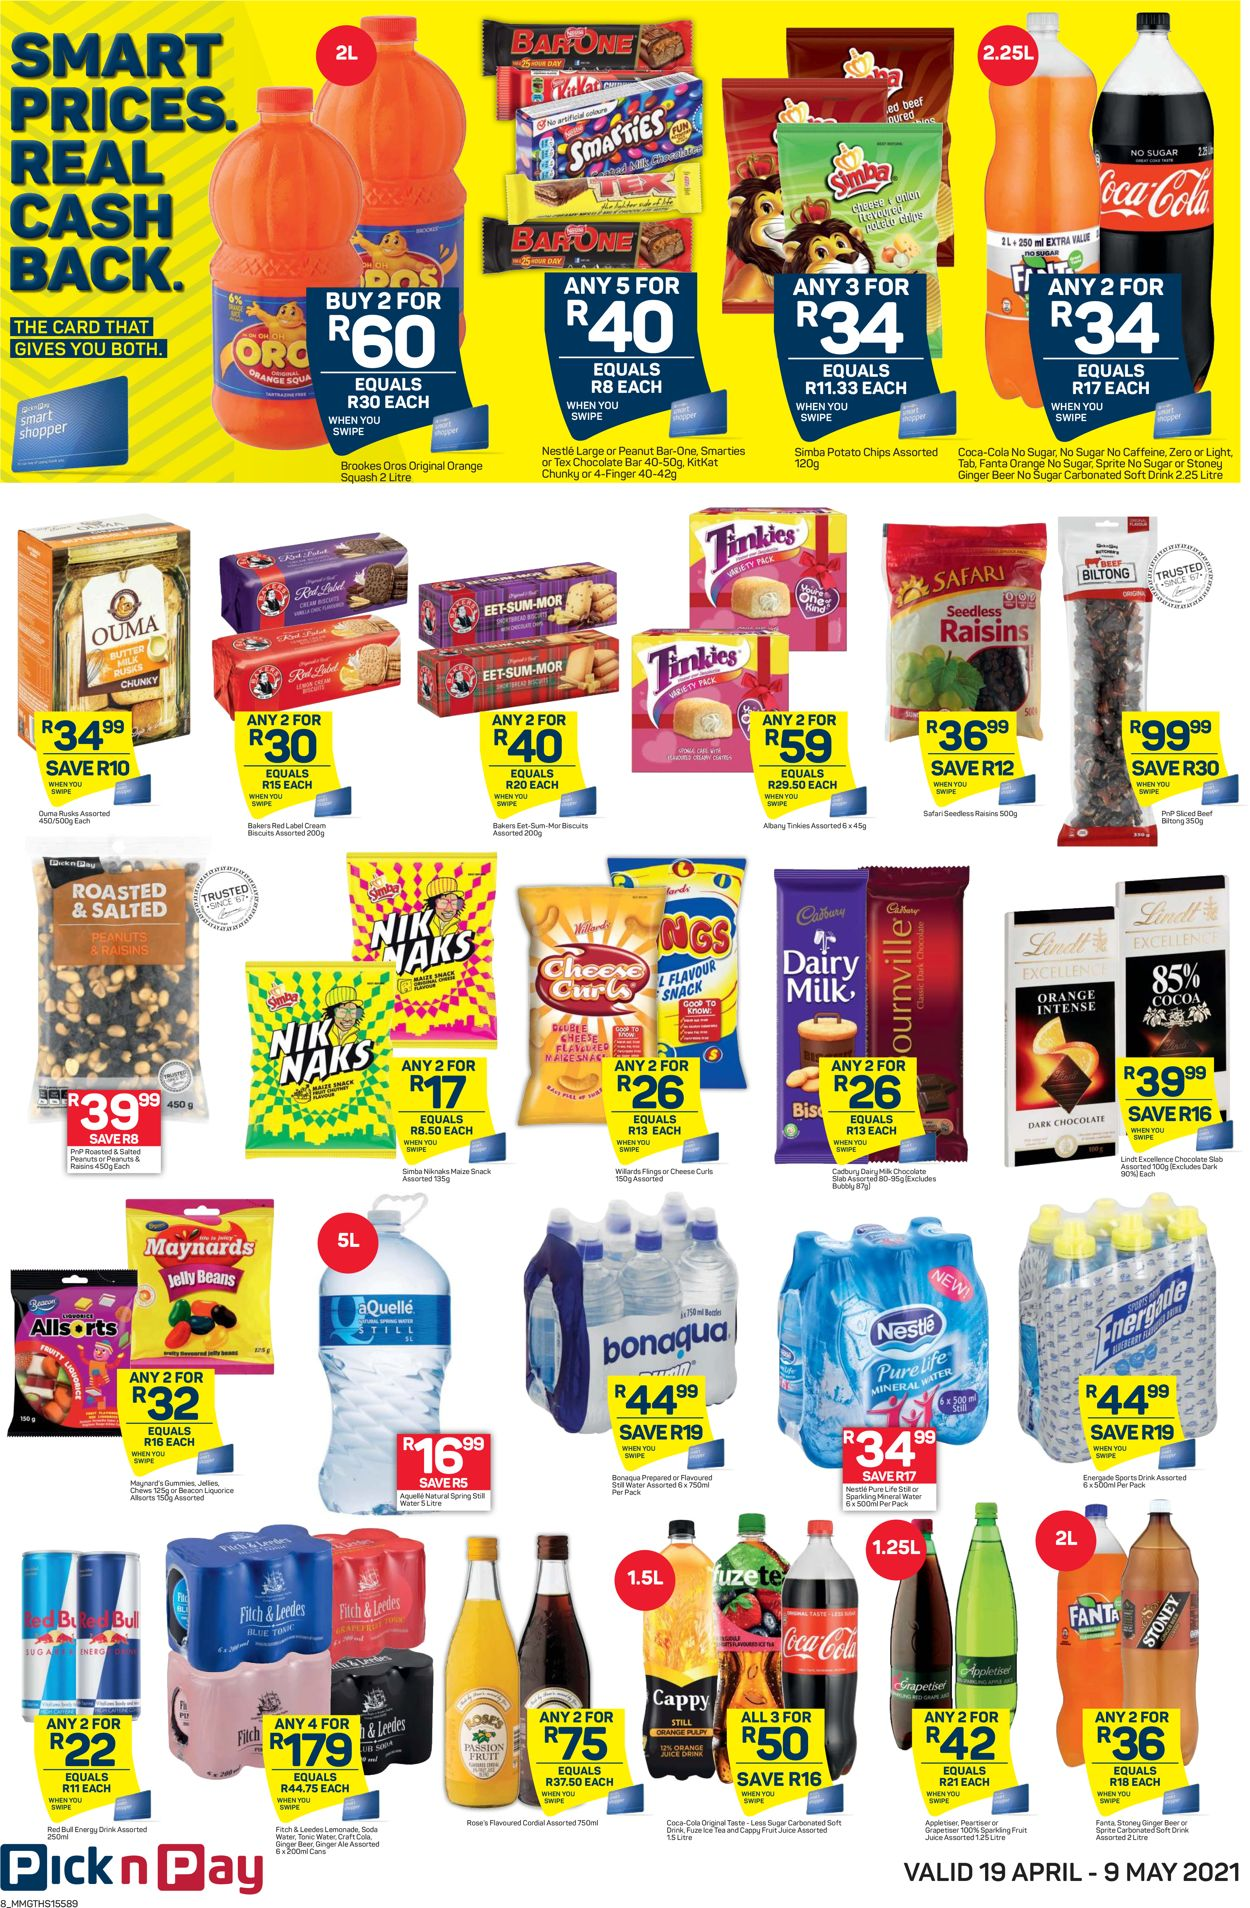 Pick n Pay Catalogue - 2021/04/19-2021/04/25 (Page 8)